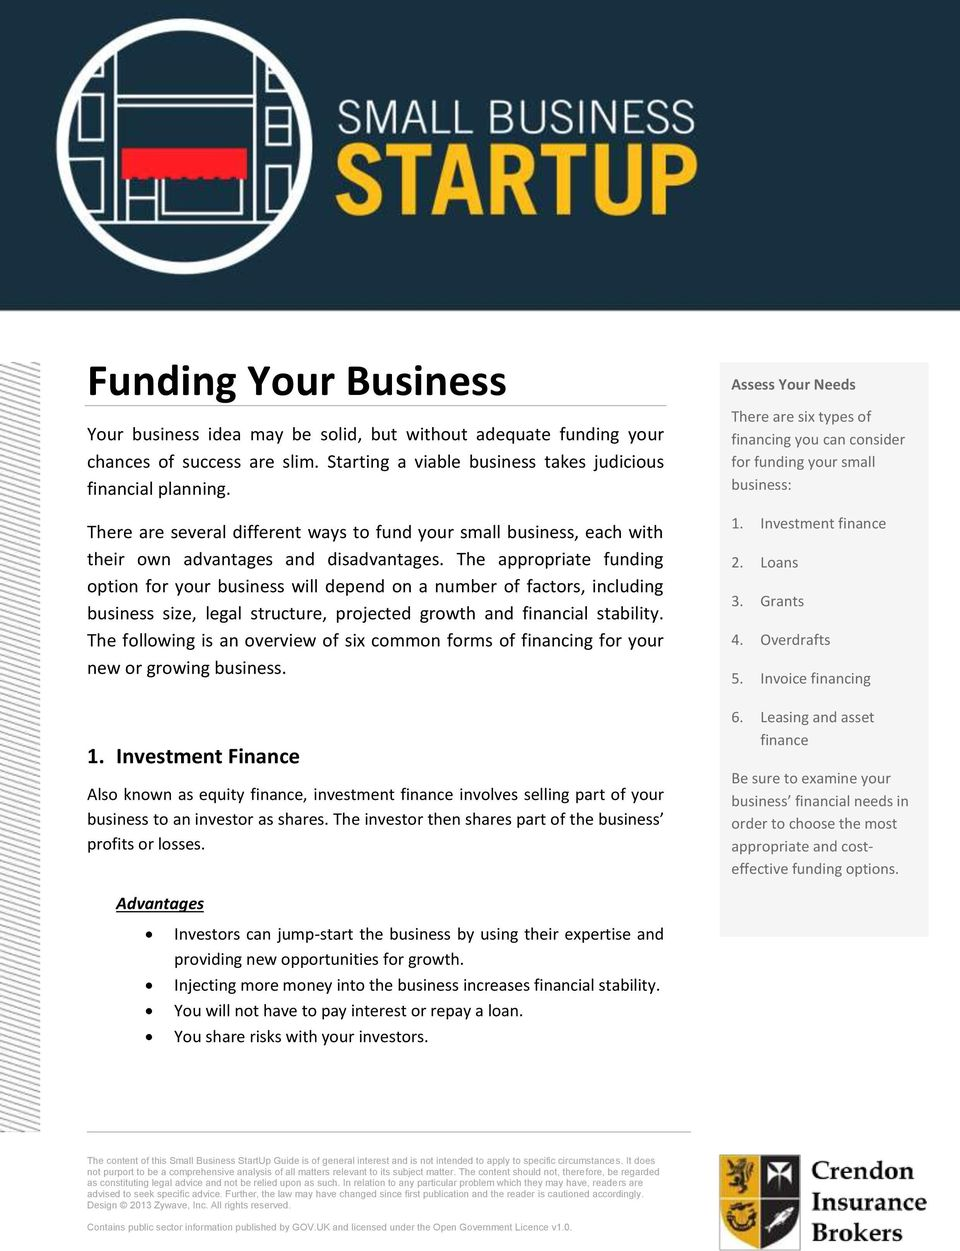 The appropriate funding option for your business will depend on a number of factors, including business size, legal structure, projected growth and financial stability.